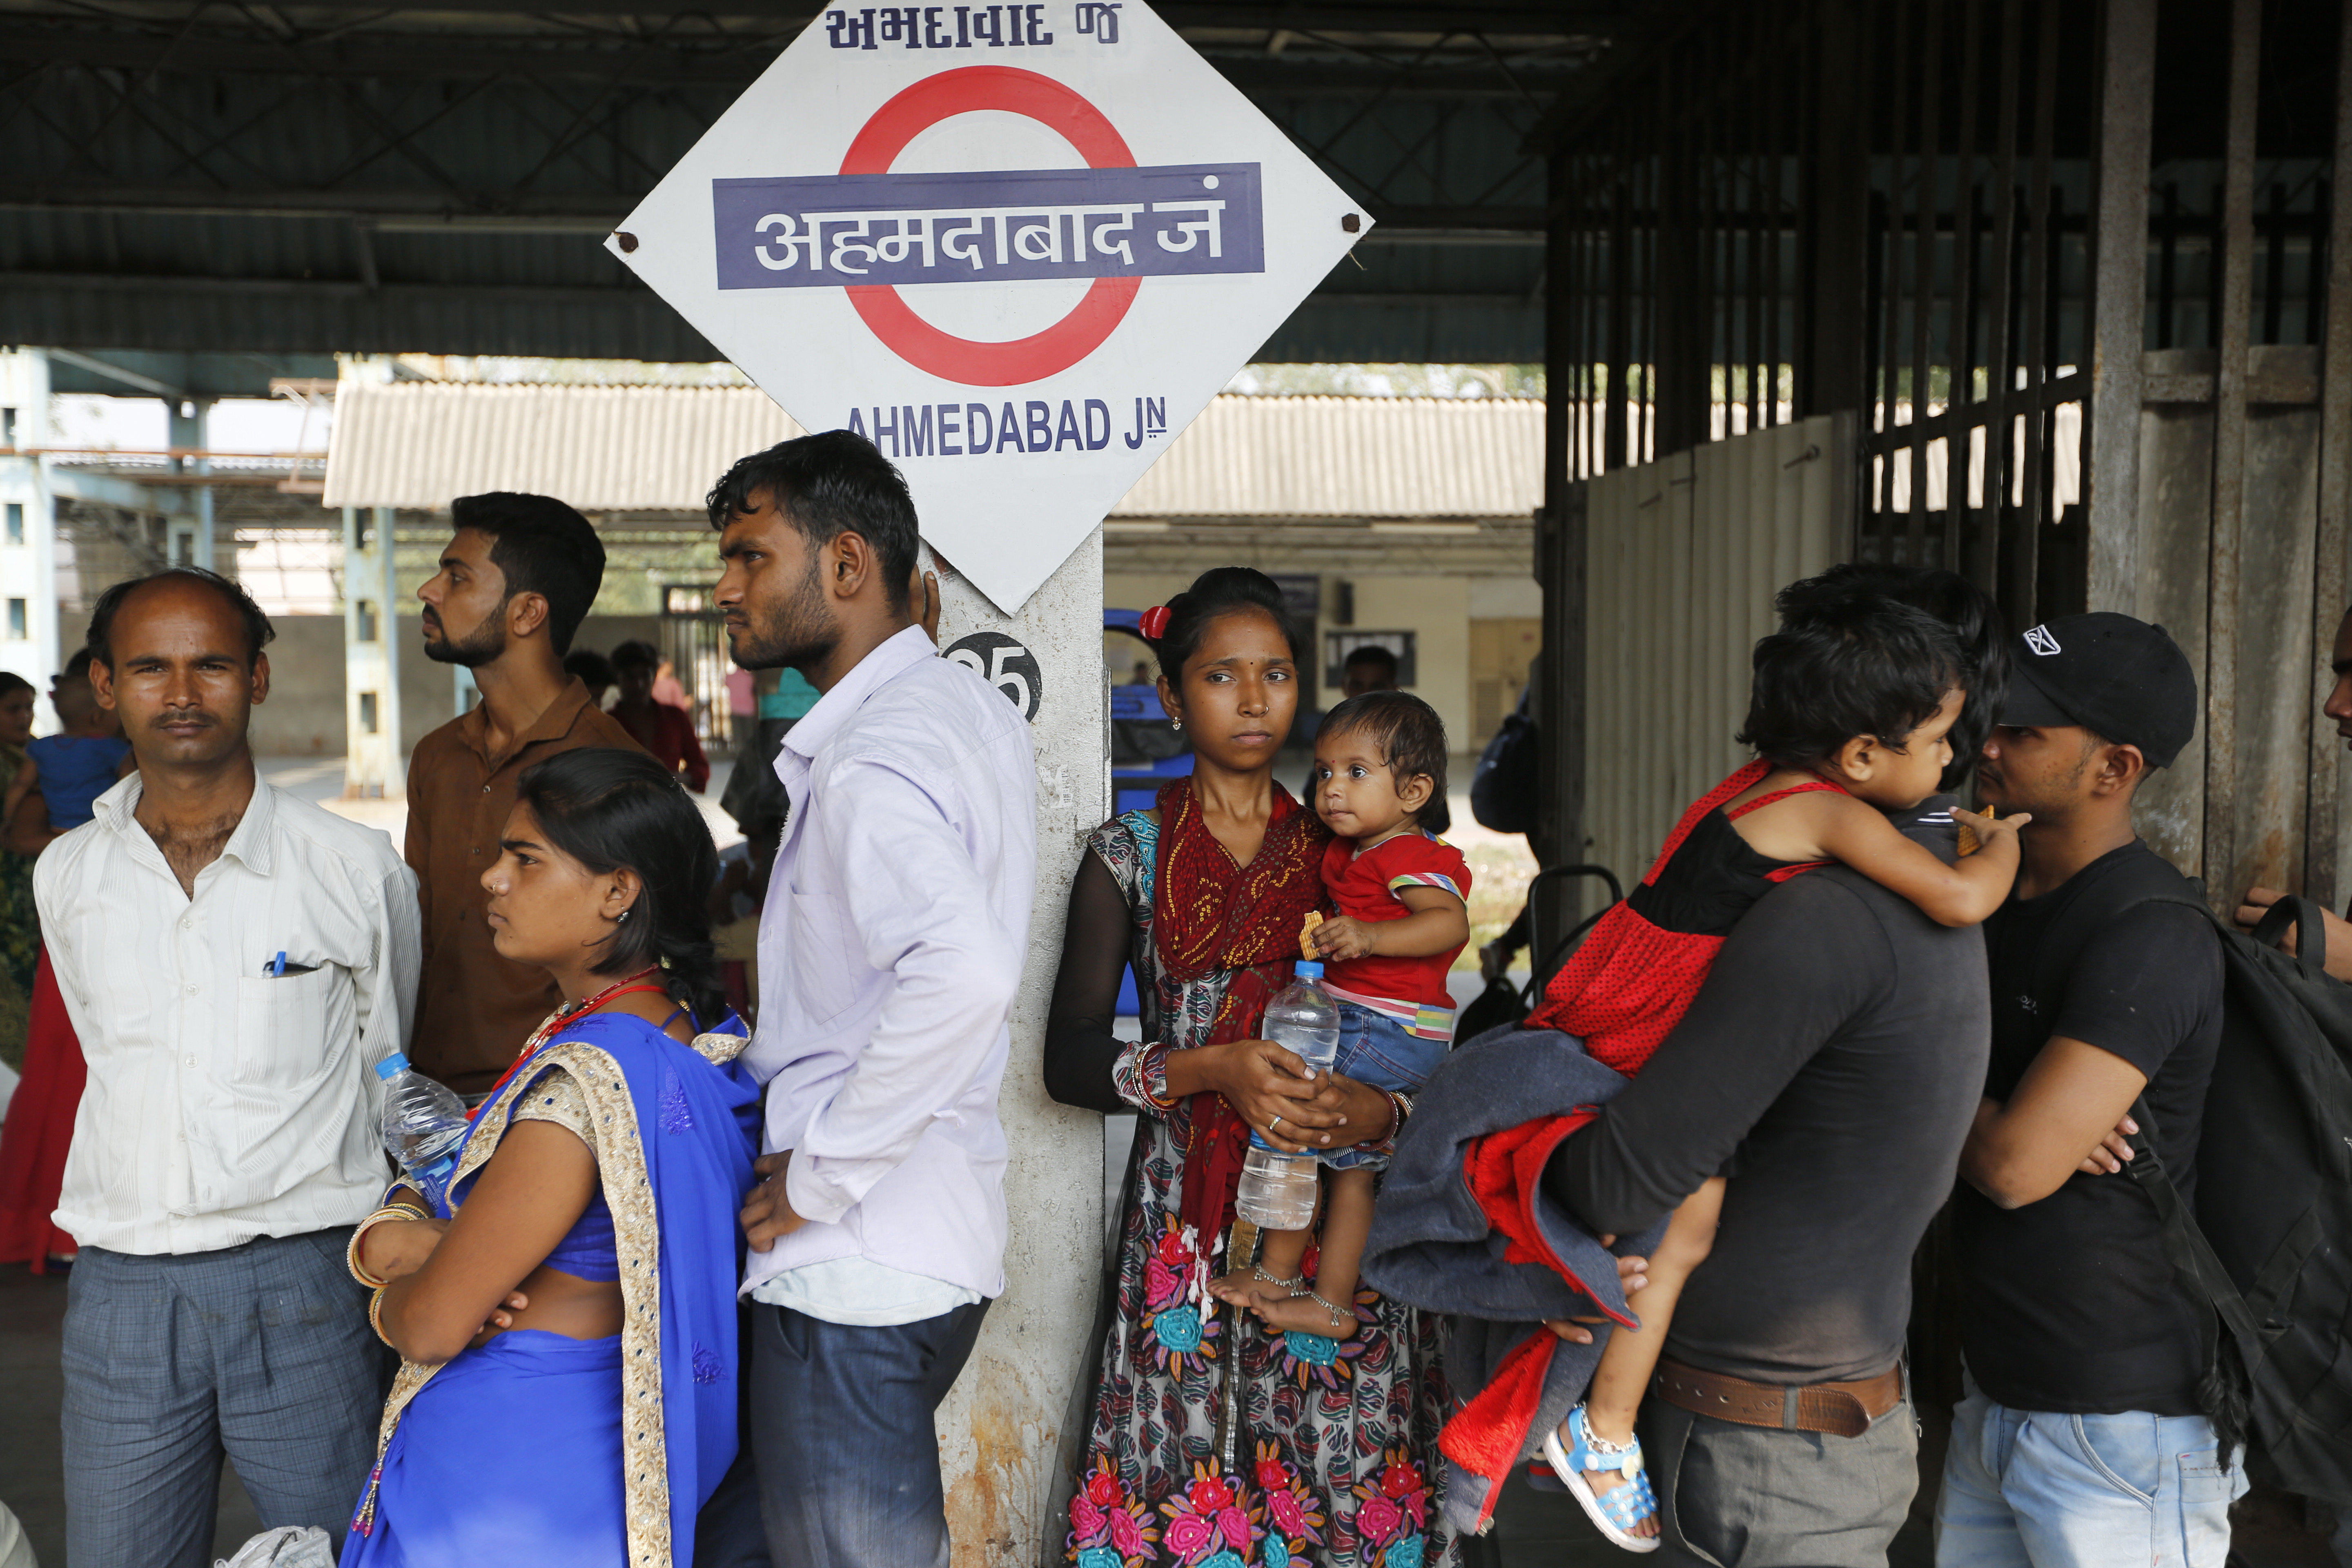 Indians stand in a queue to board a train to Uttar Pradesh, at a railway station in Ahmadabad, India - PTI